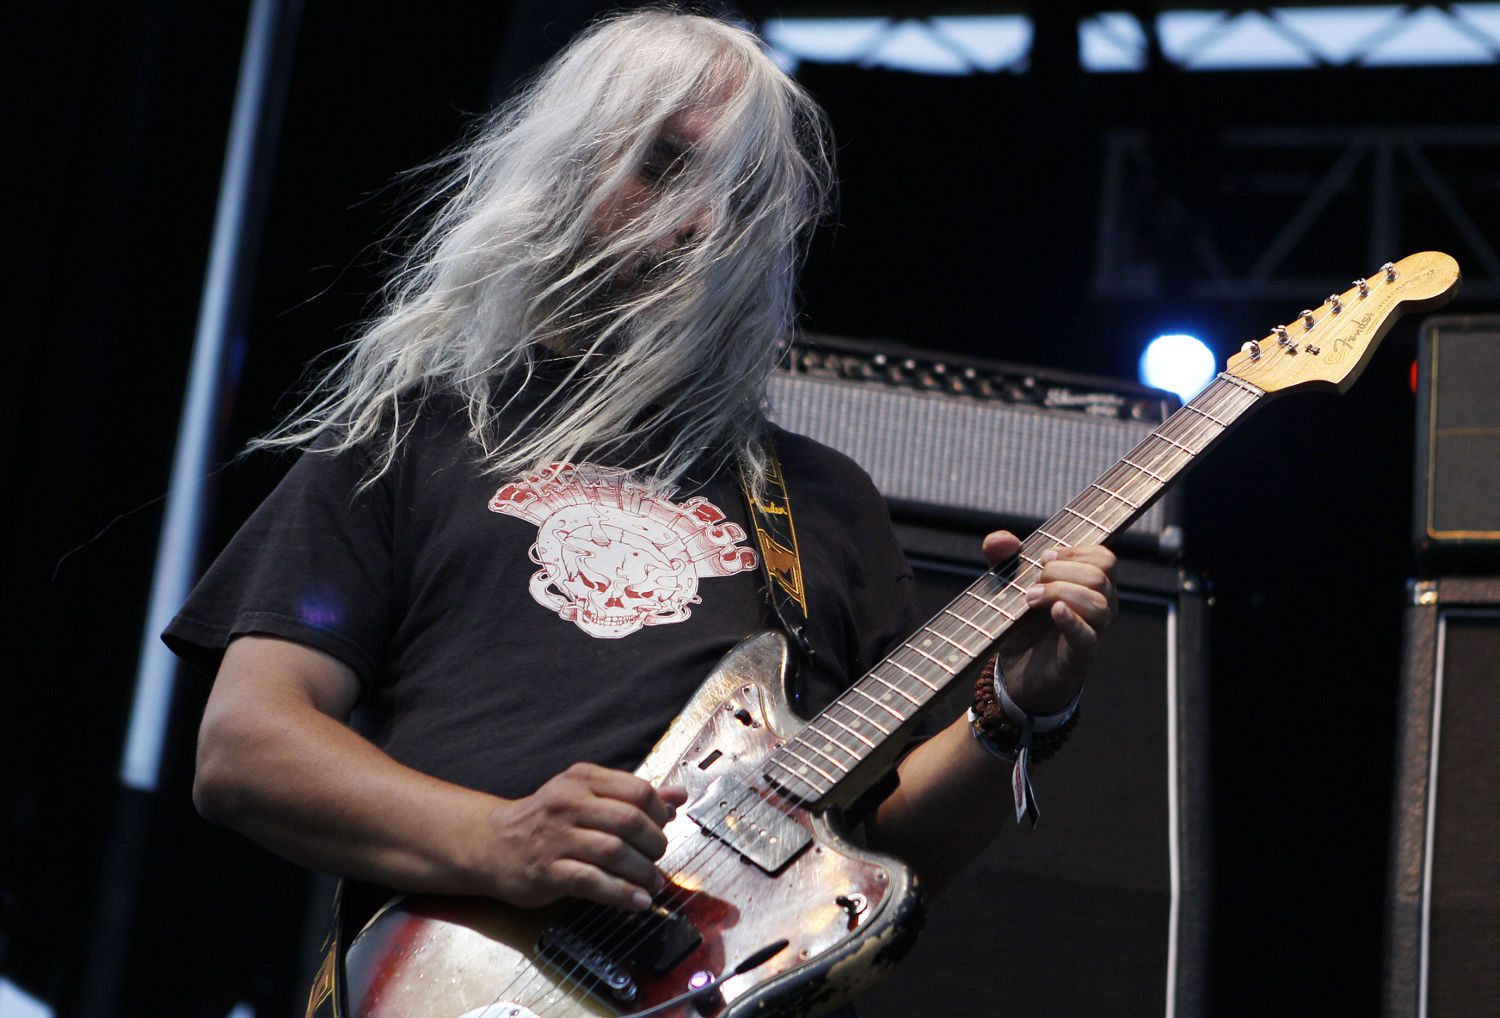 Guitarist J Mascis of Dinosaur Jr. performs during LouFest in St. Louis, Missouri on Saturday, August 25, 2012.